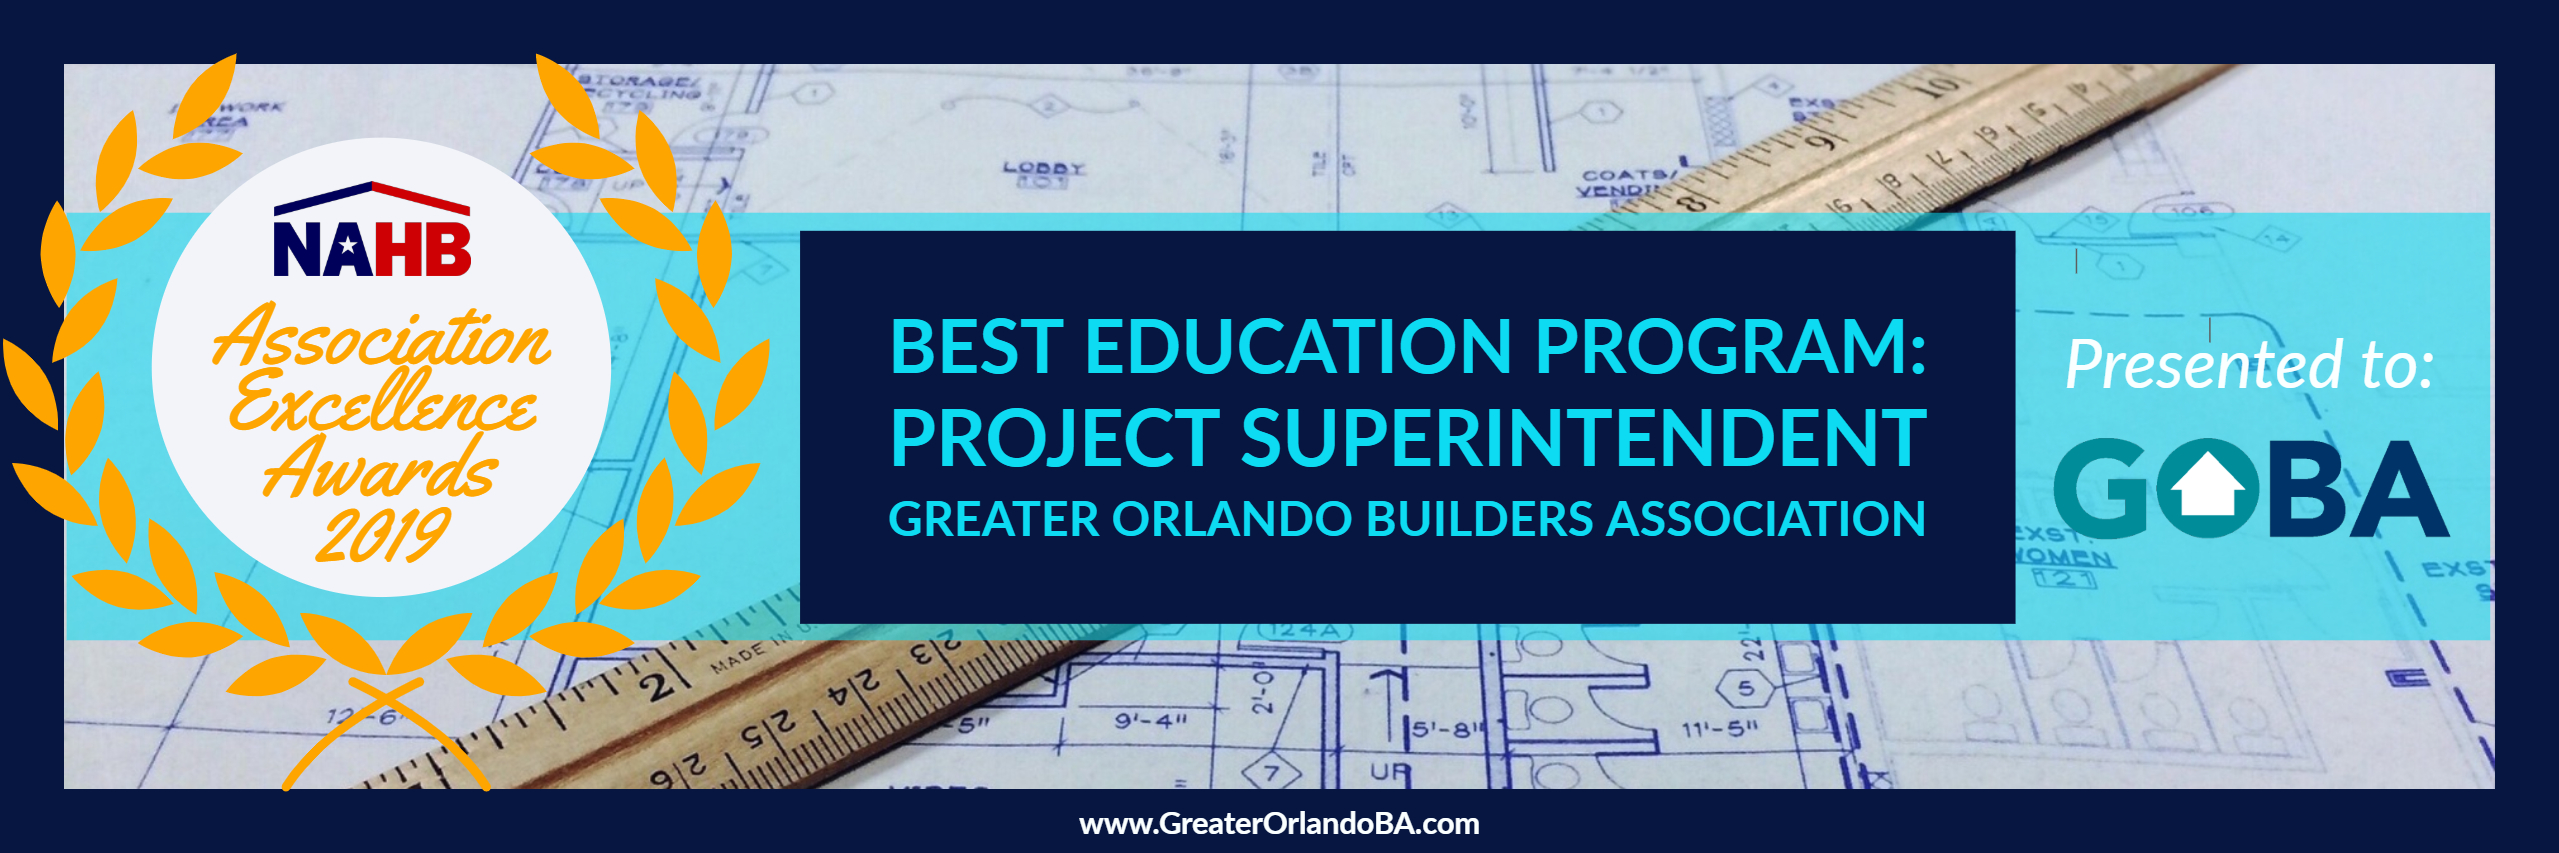 Project-Superintendent-Web-Banner-REVISED.jpg